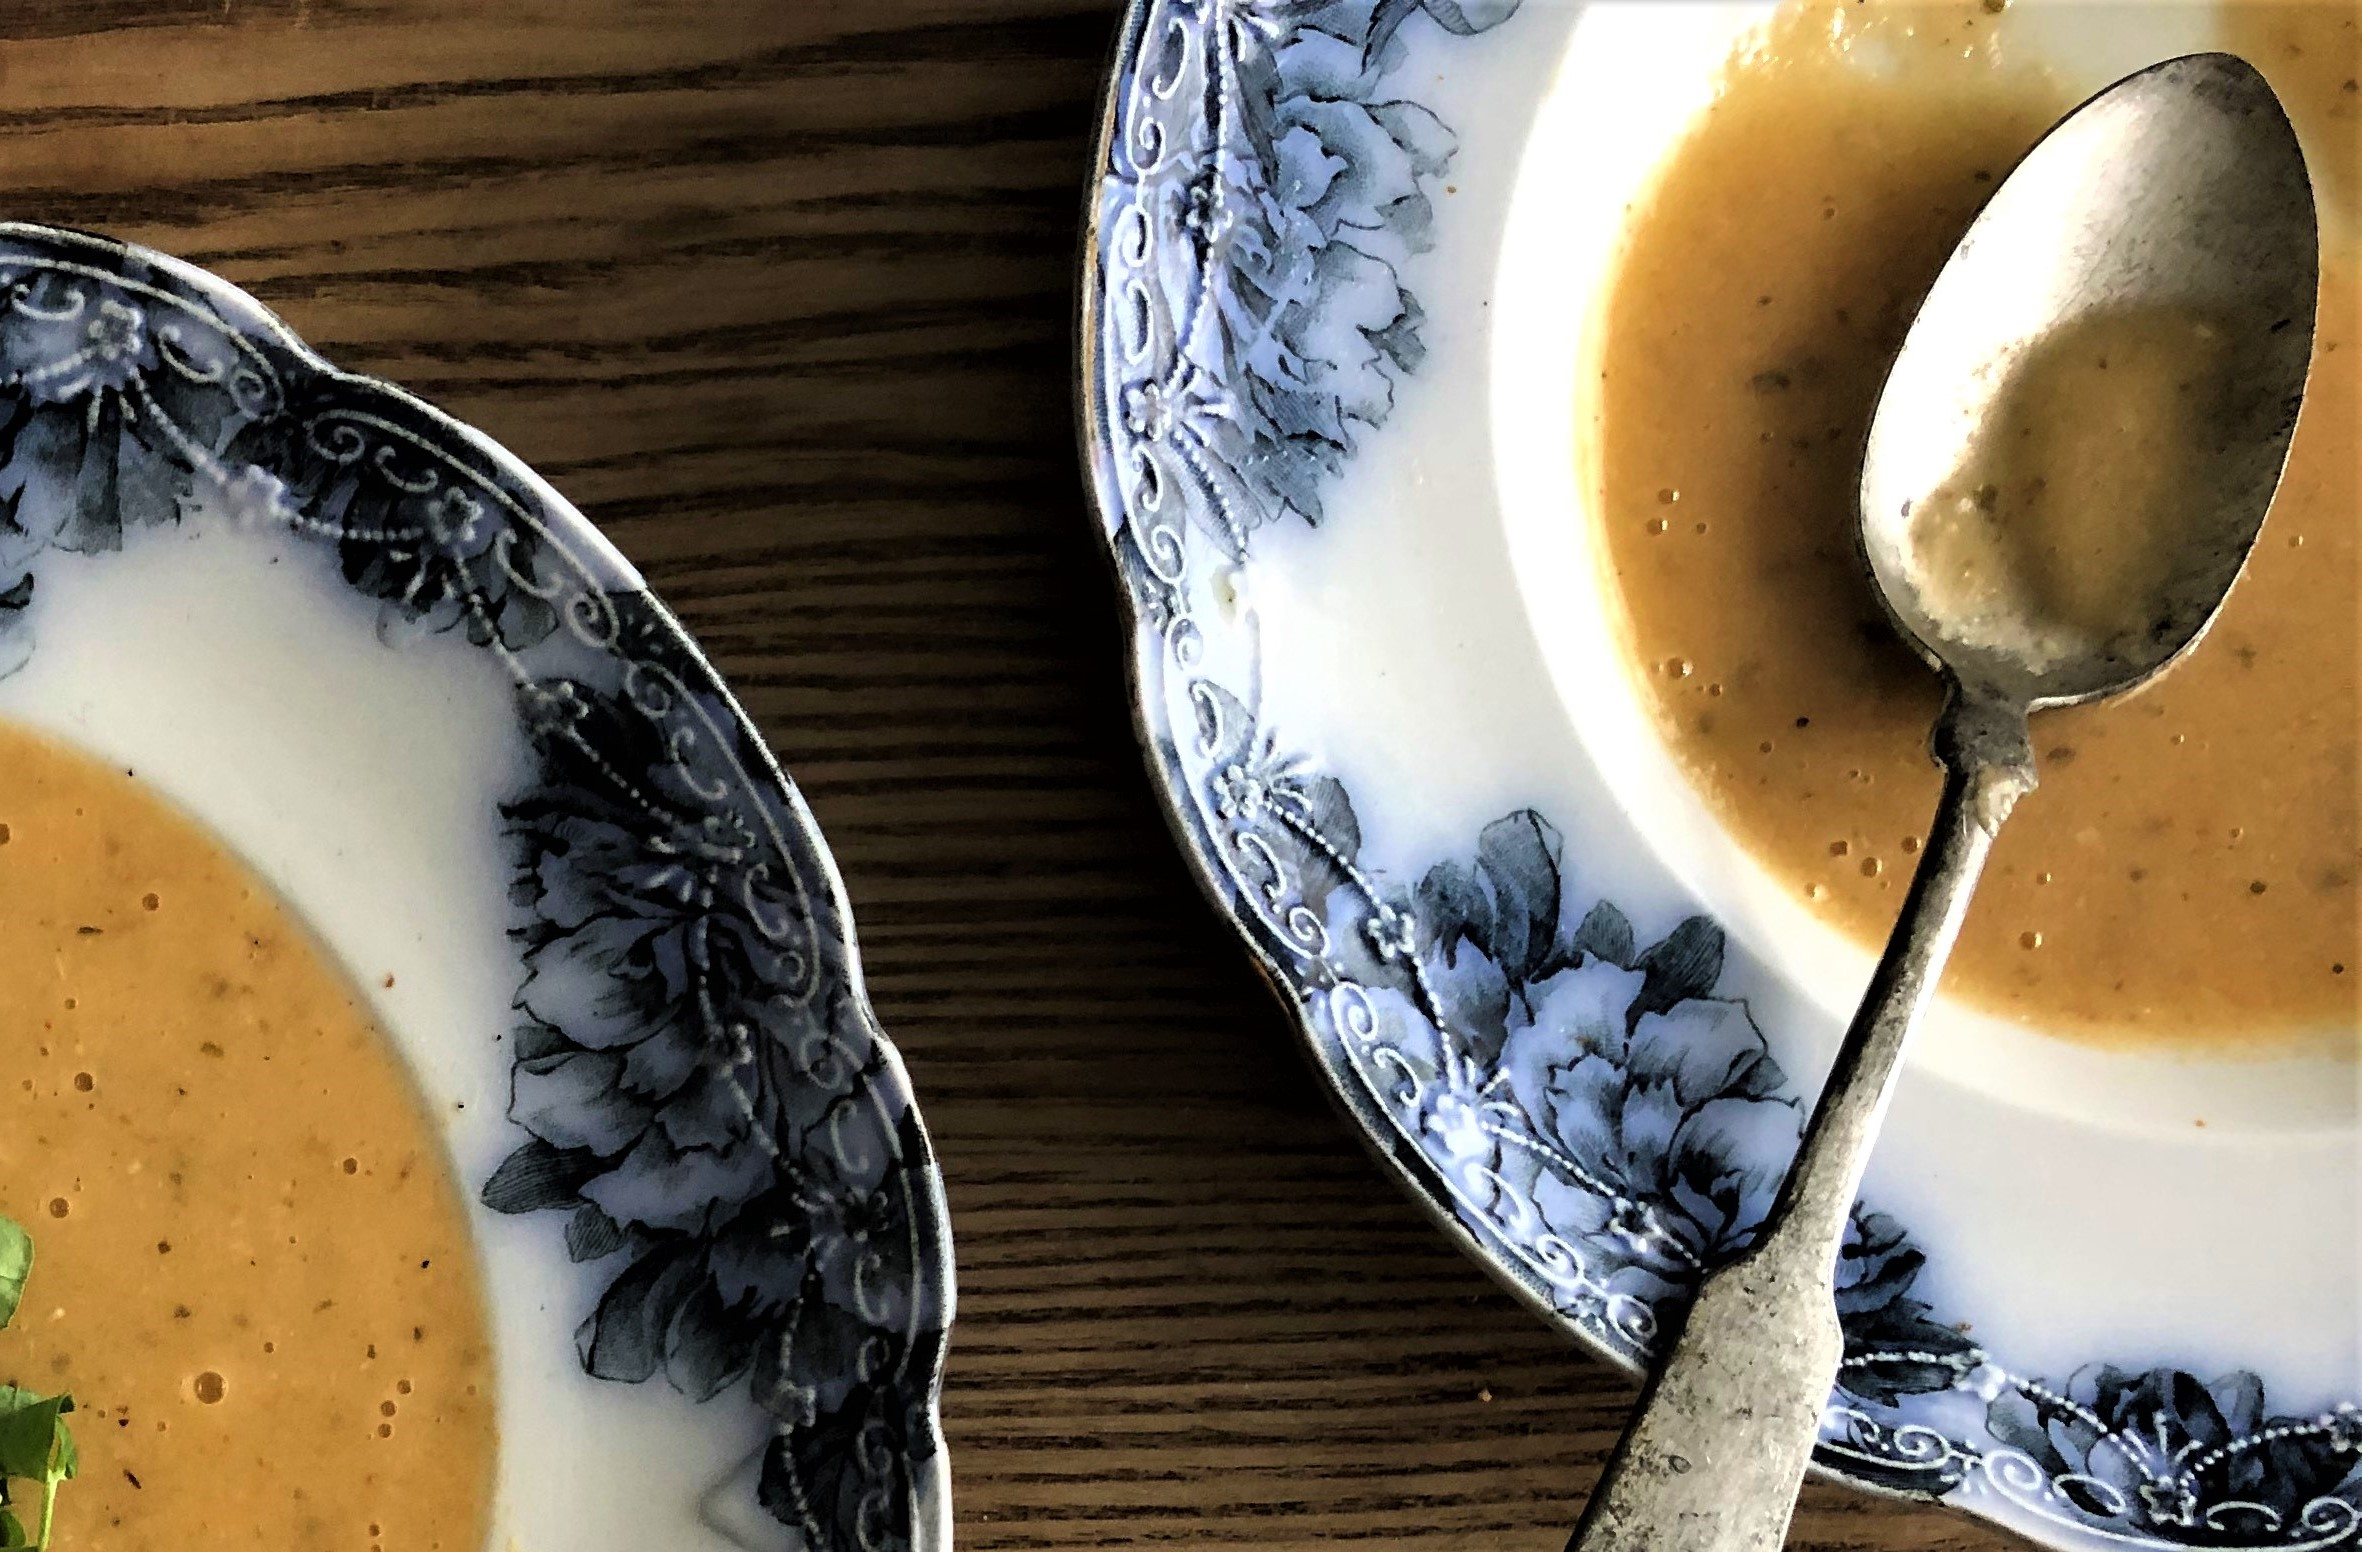 Create an intensely flavourful soup from roasted garlic and stale bread. It's that easy! - Mark DeWolf